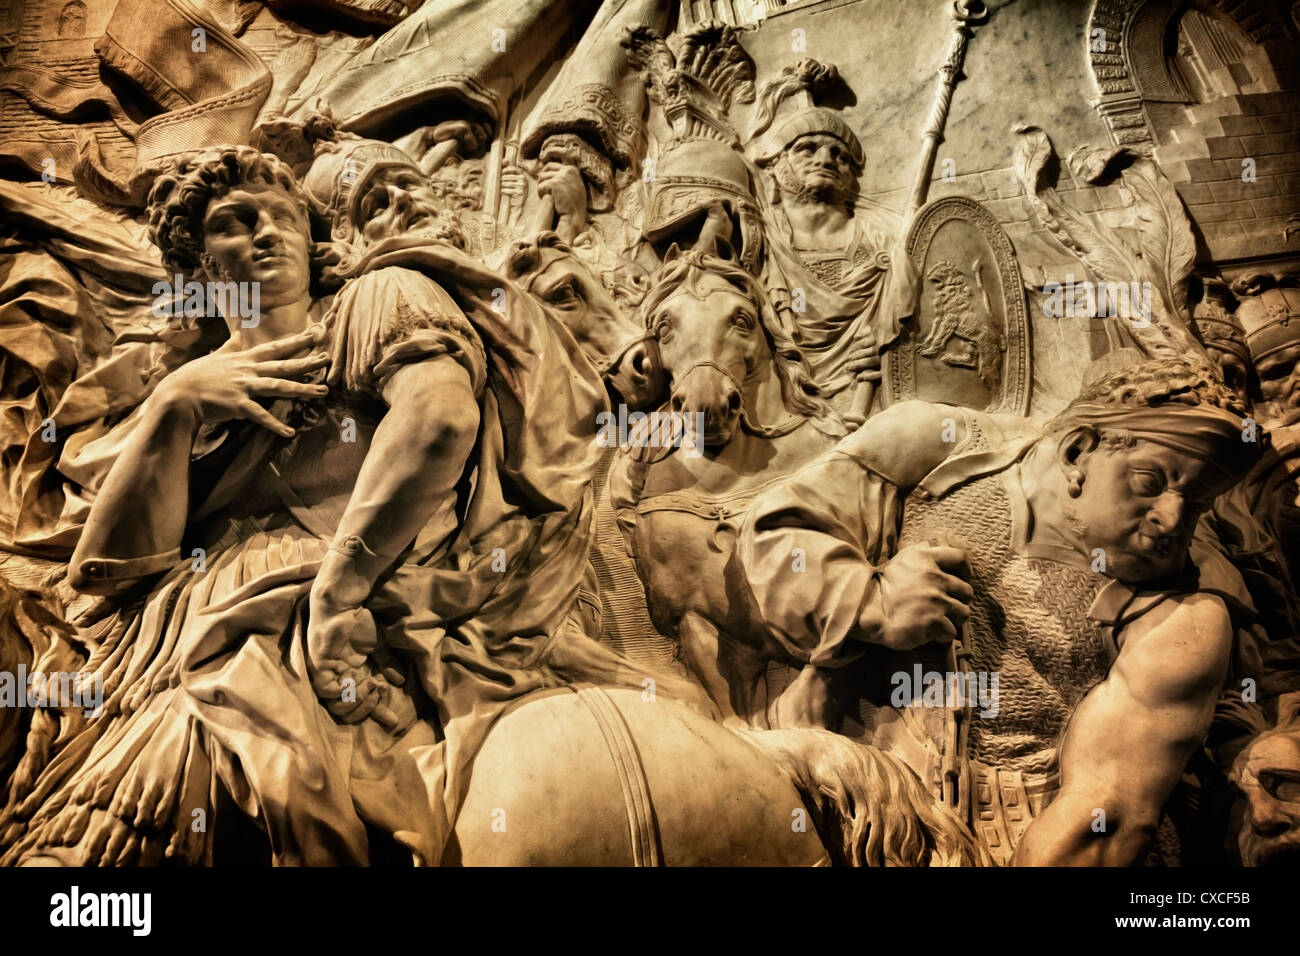 Wall sculpture in Richelieu section of Louvre, Paris - Stock Image